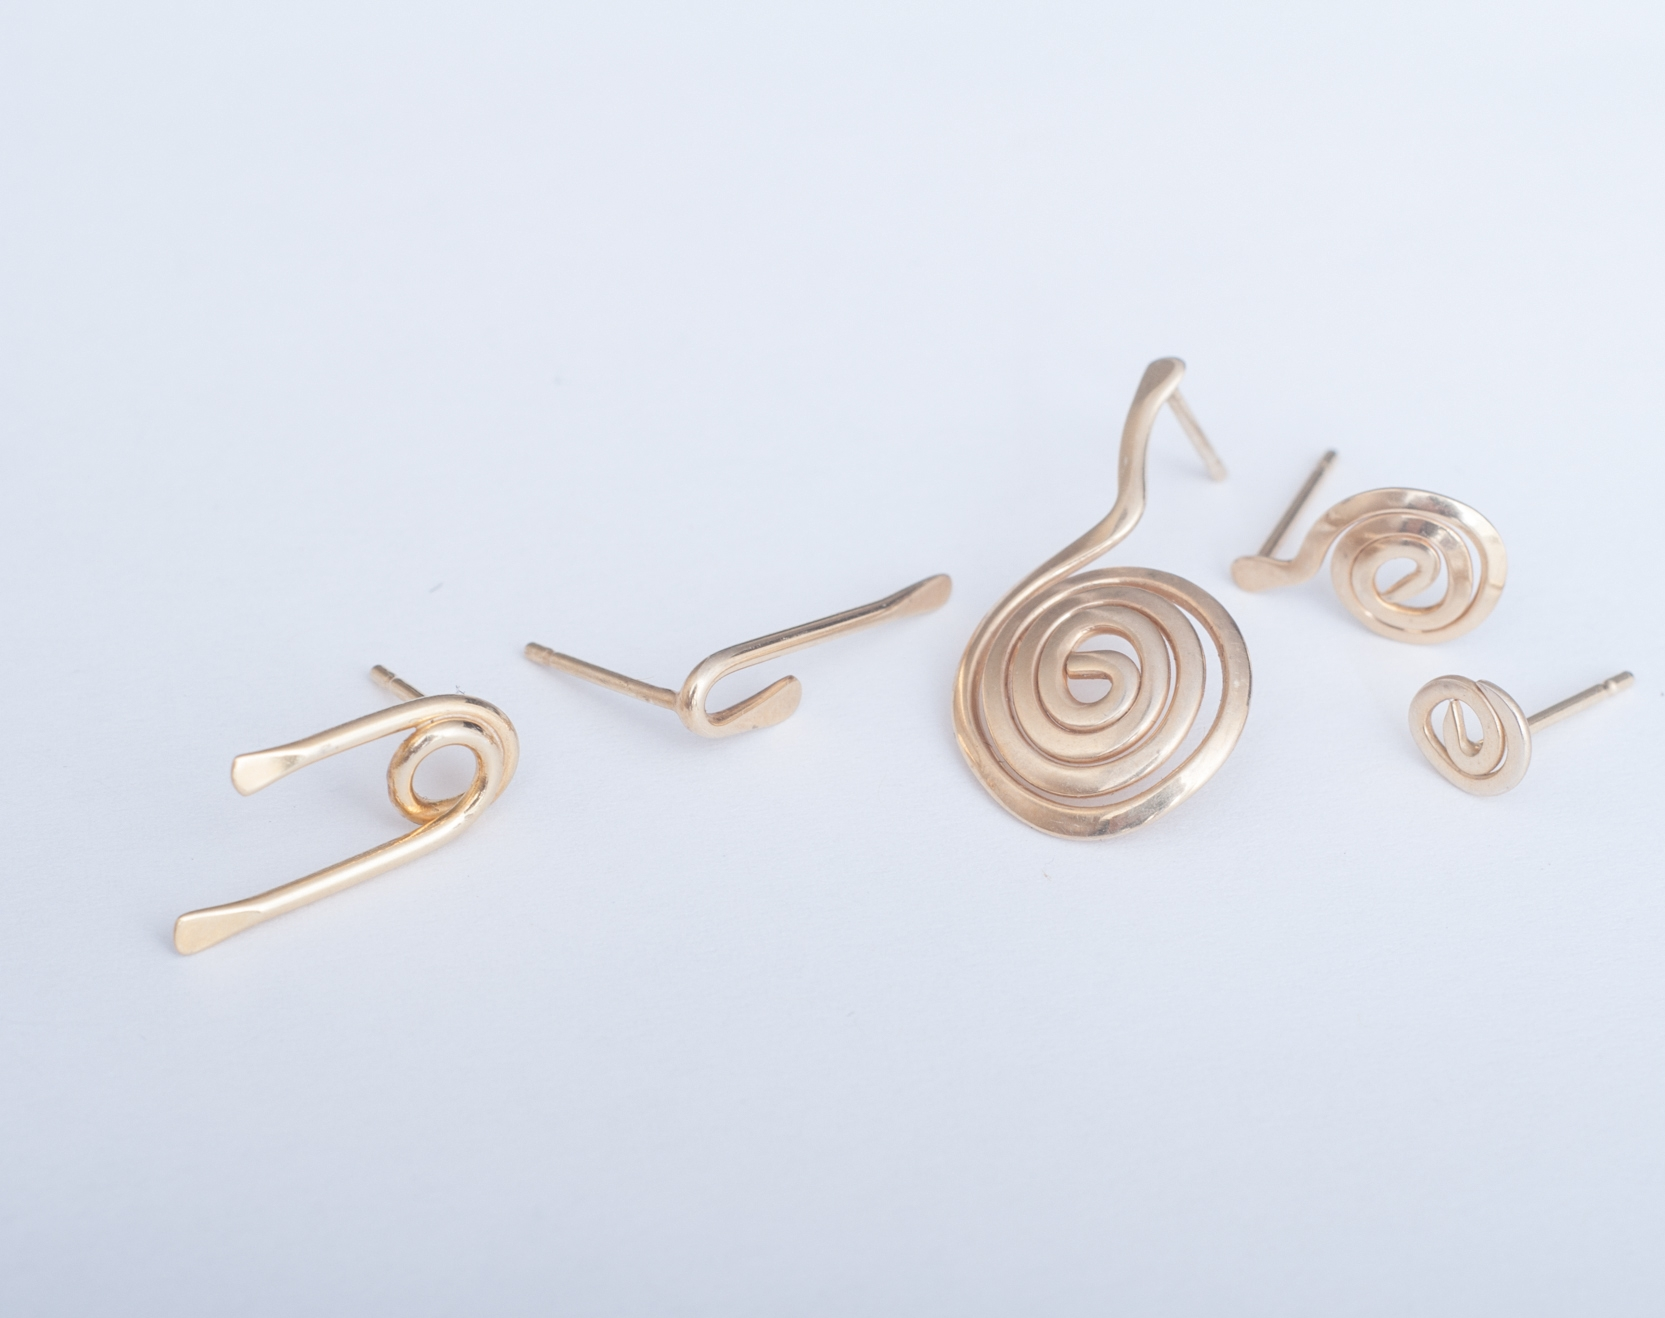 LINE COLLECTION - The Lines are a series of simple, elegant earrings that are made solely from certified Fairmined Silver and Gold. Transparent sourcing and ethical luxury for everyday wear.